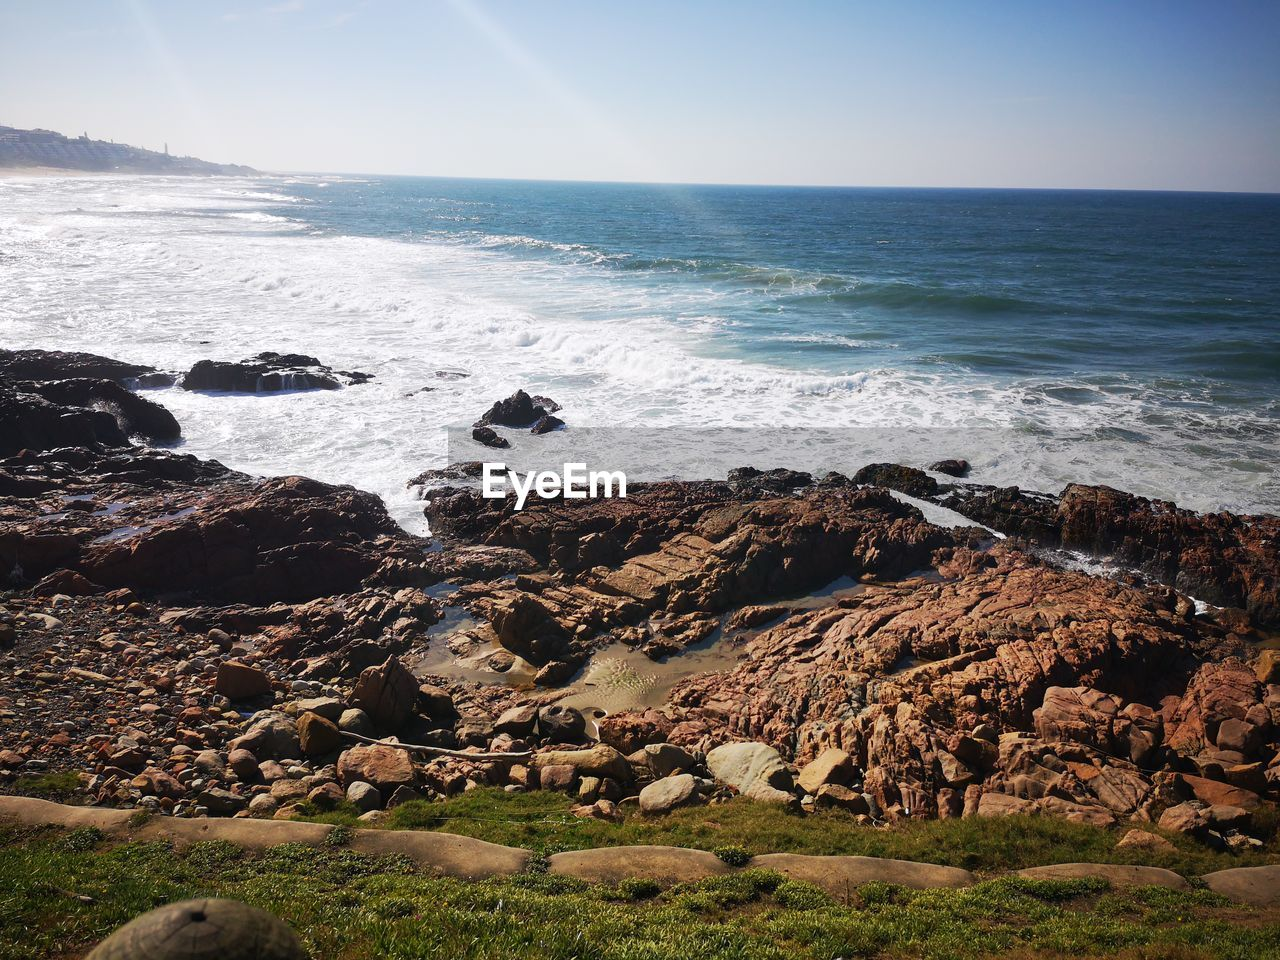 sea, rock, water, horizon, horizon over water, beauty in nature, solid, rock - object, sky, land, scenics - nature, beach, wave, motion, nature, rock formation, tranquil scene, no people, tranquility, breaking, rocky coastline